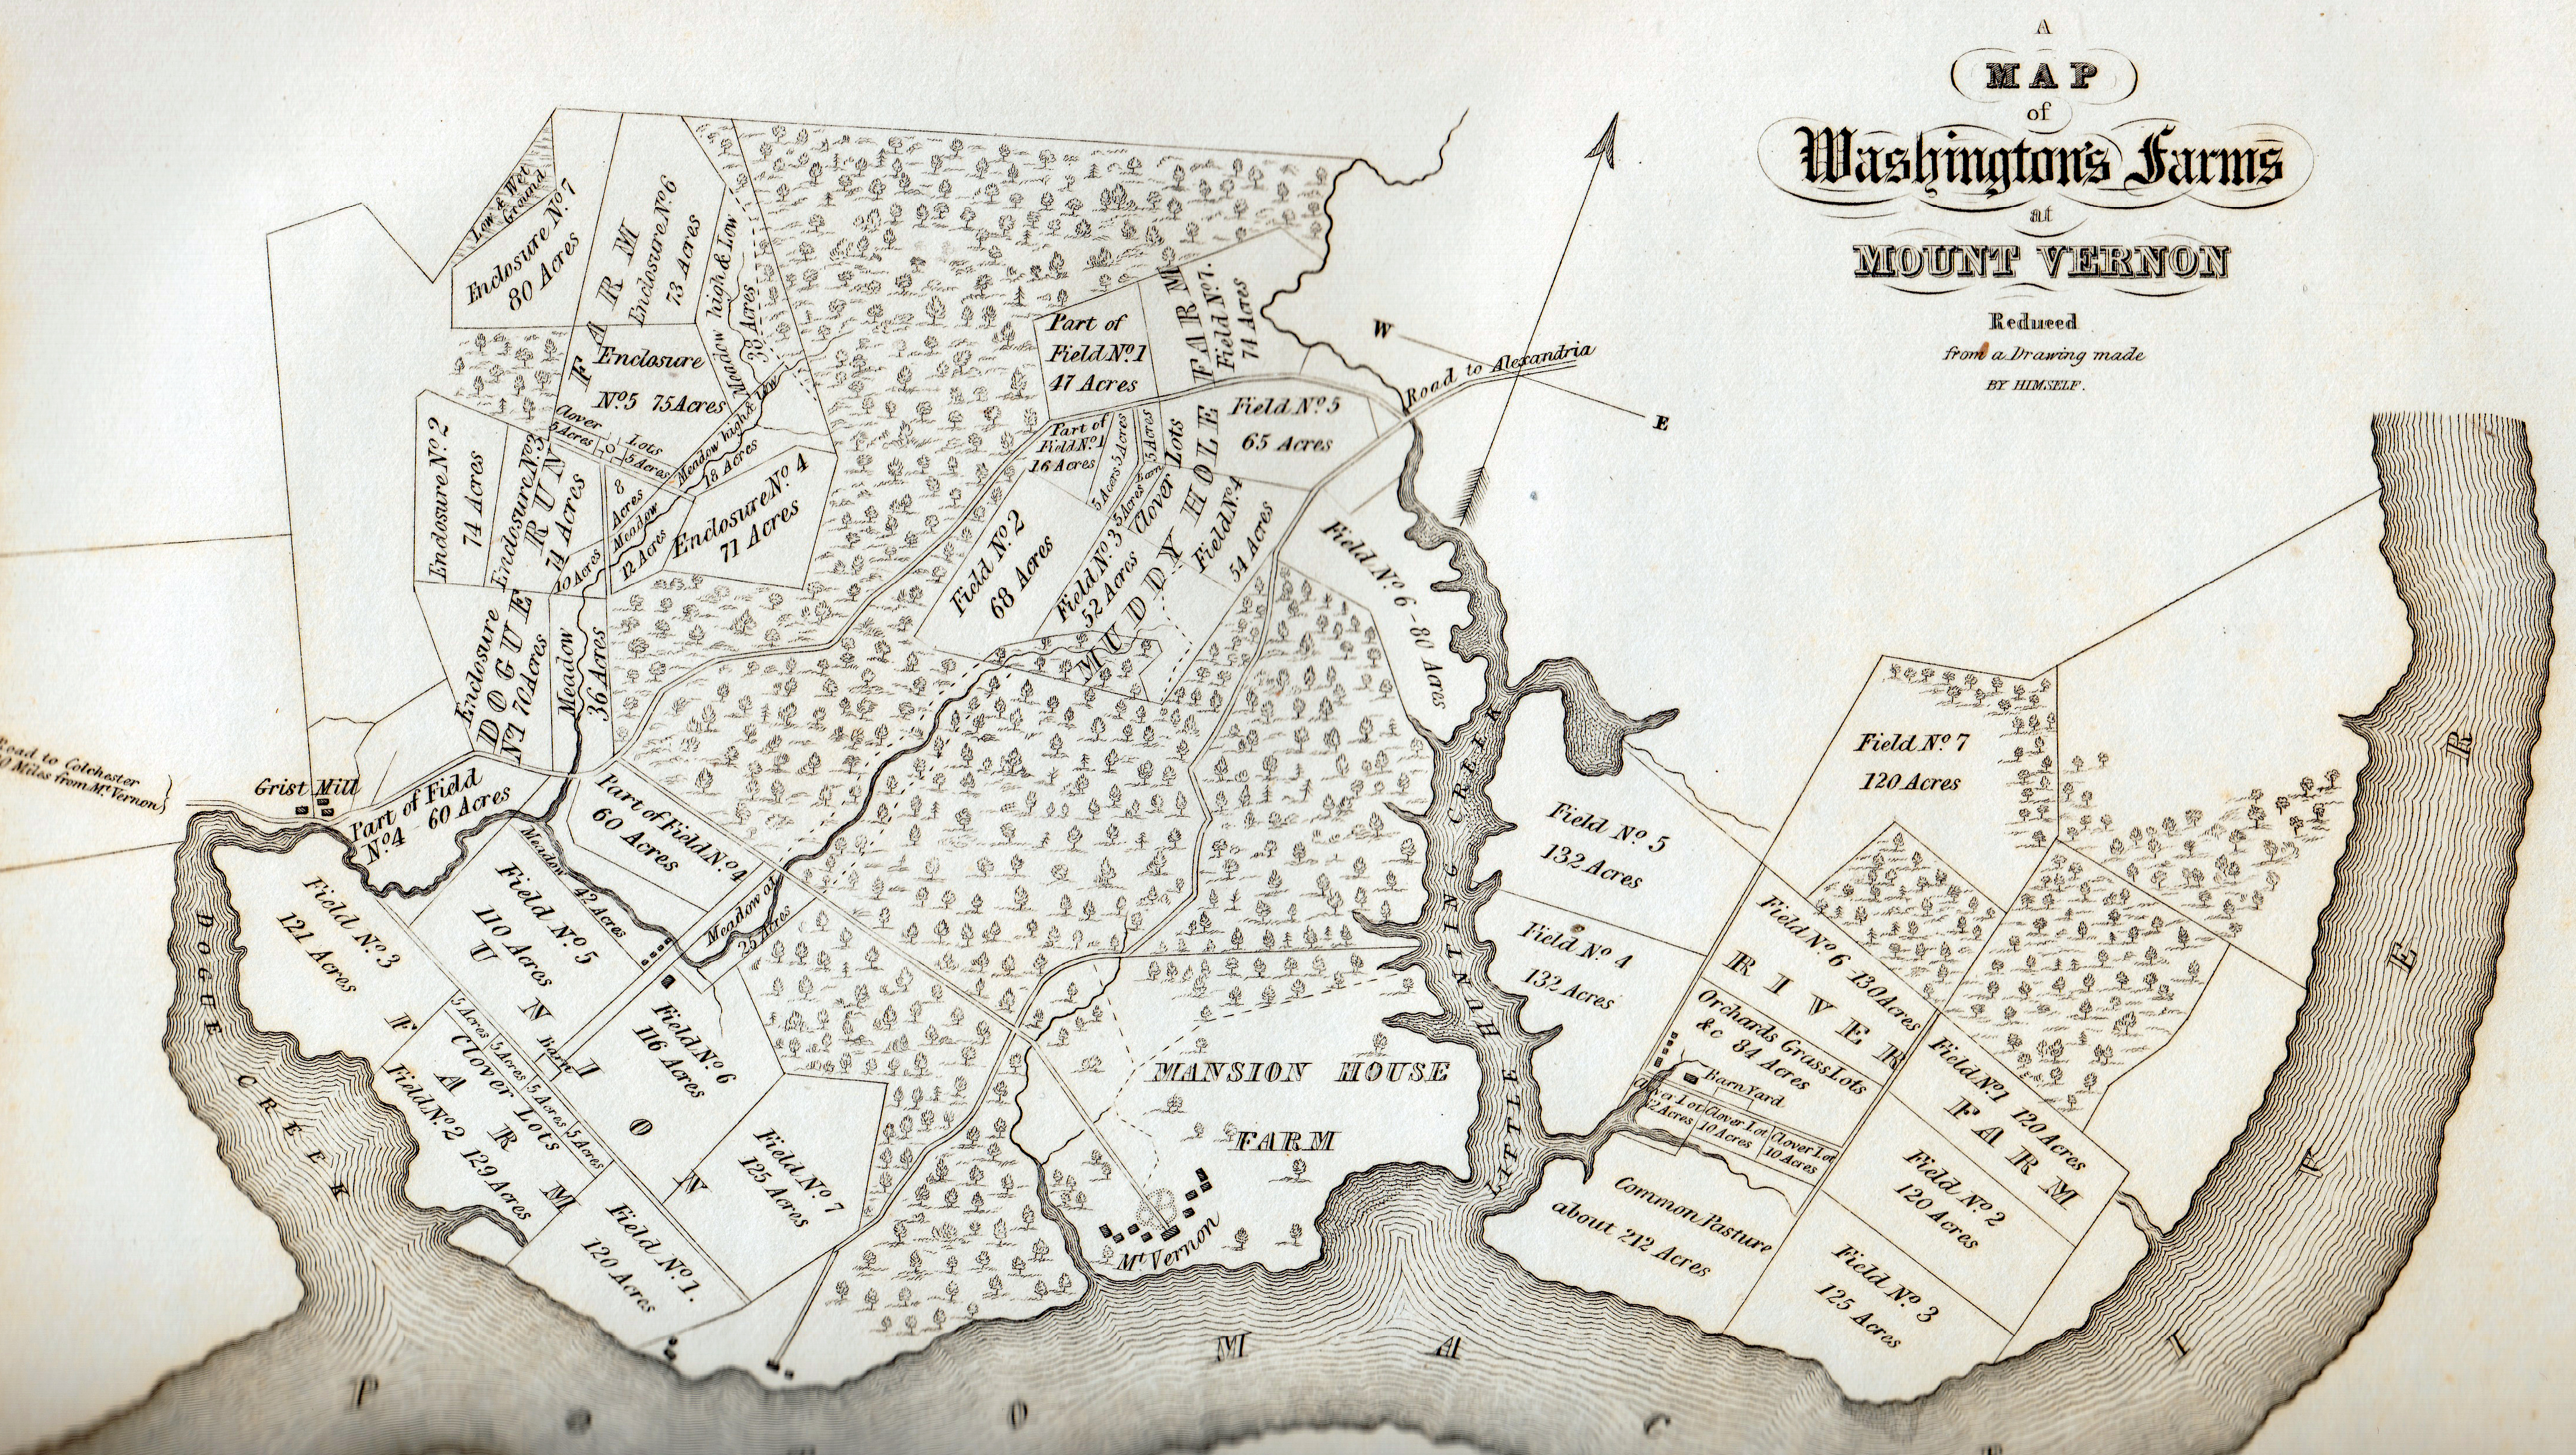 Map of the Mount Vernon plantation and lands